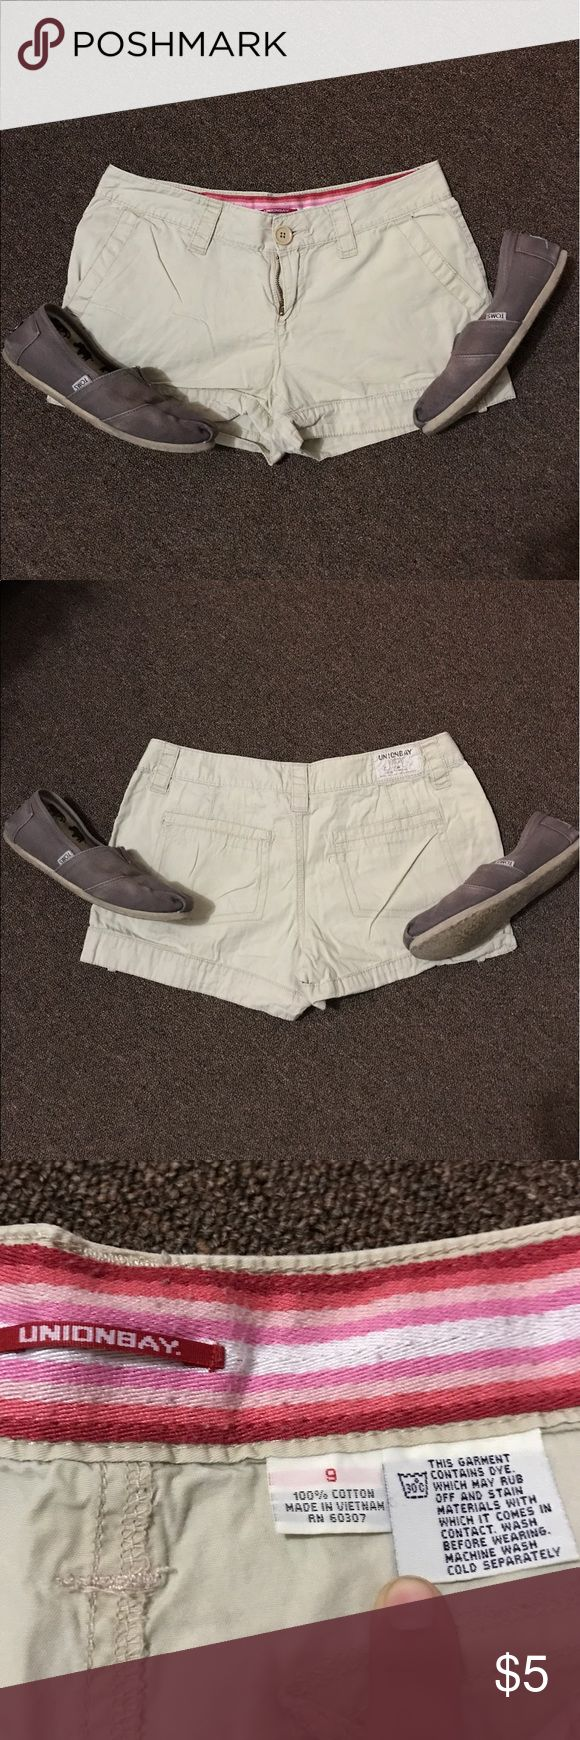 Unionbay Beige Shorts Pre-loved Unionbay beige shorts! Go with anything and very comfortable and well cared for. Please comment for q&a! Offers considered ! UNIONBAY Shorts